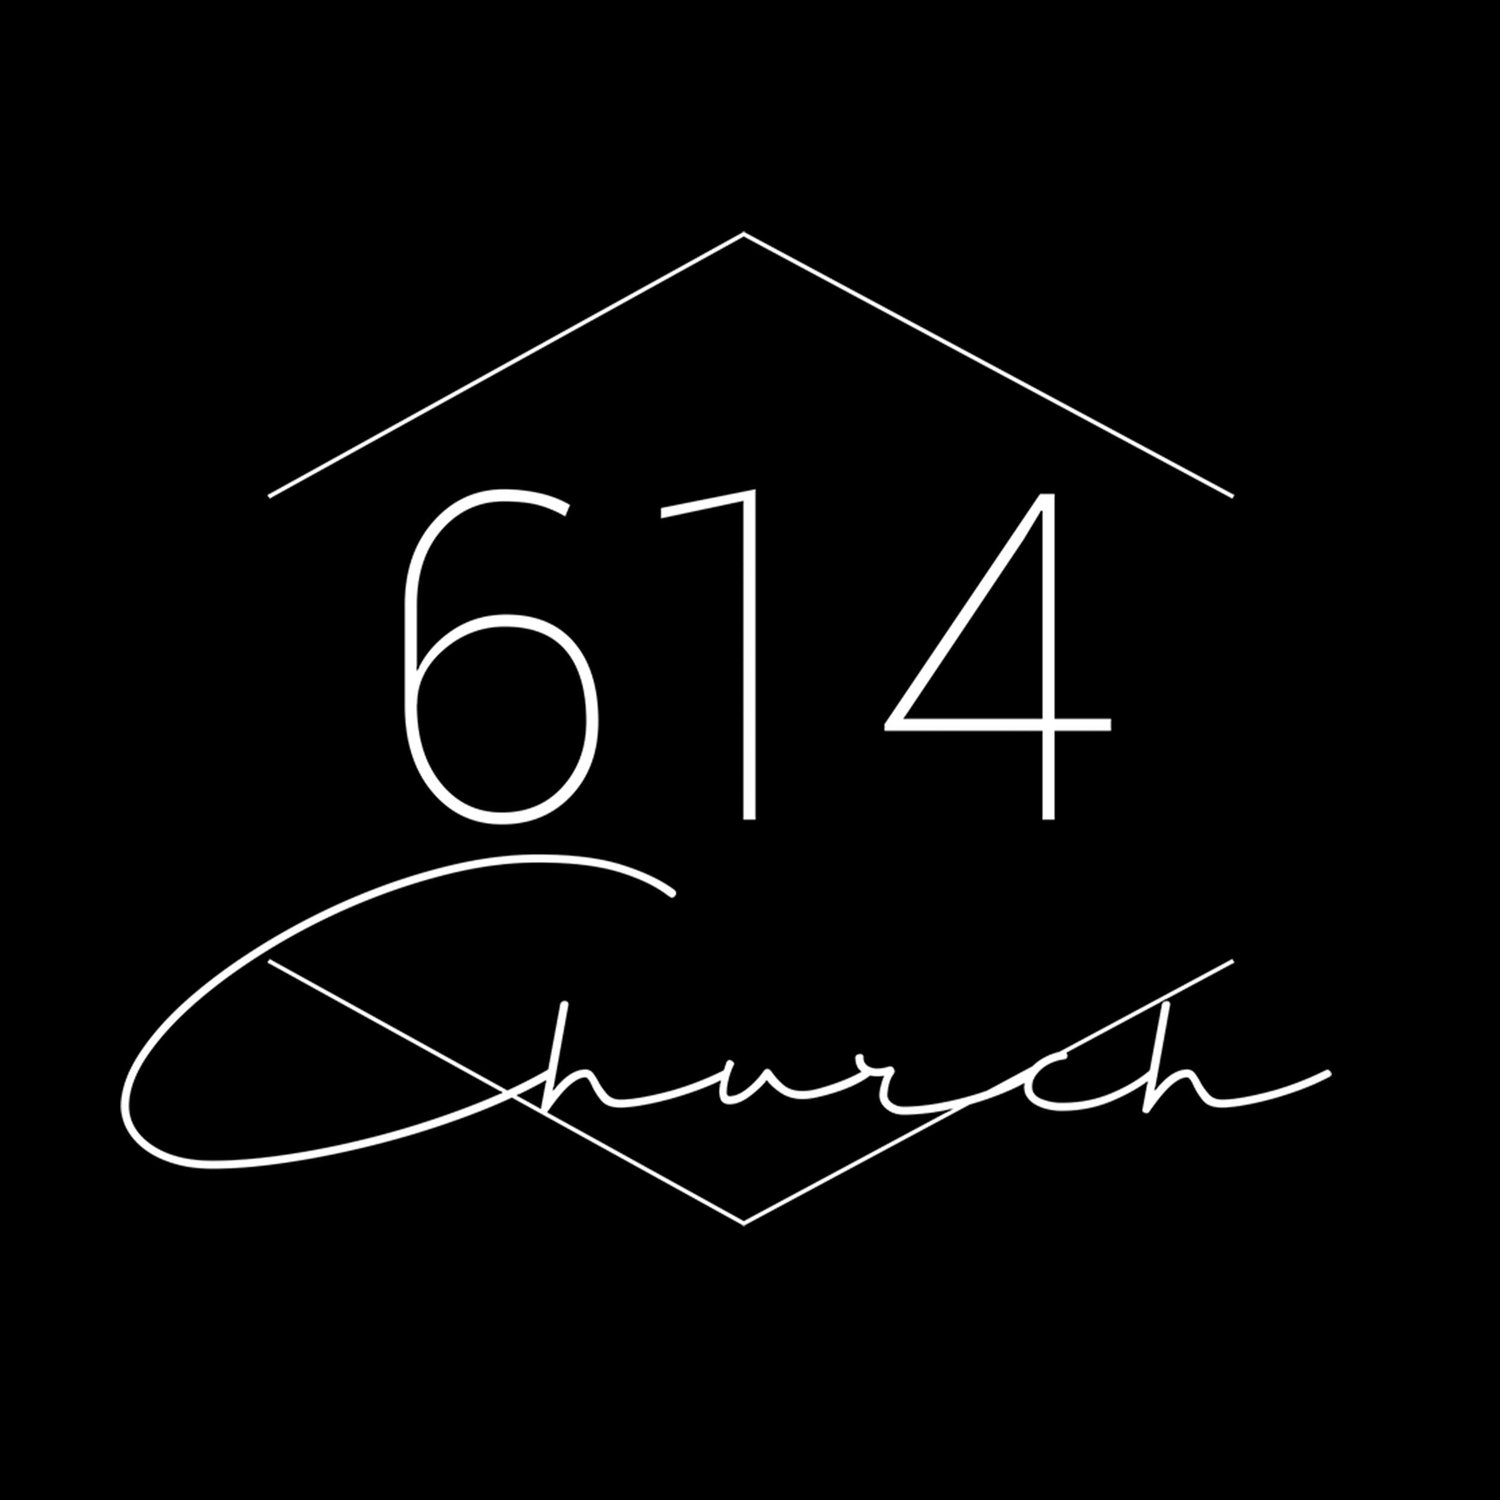 614 Church Podcast